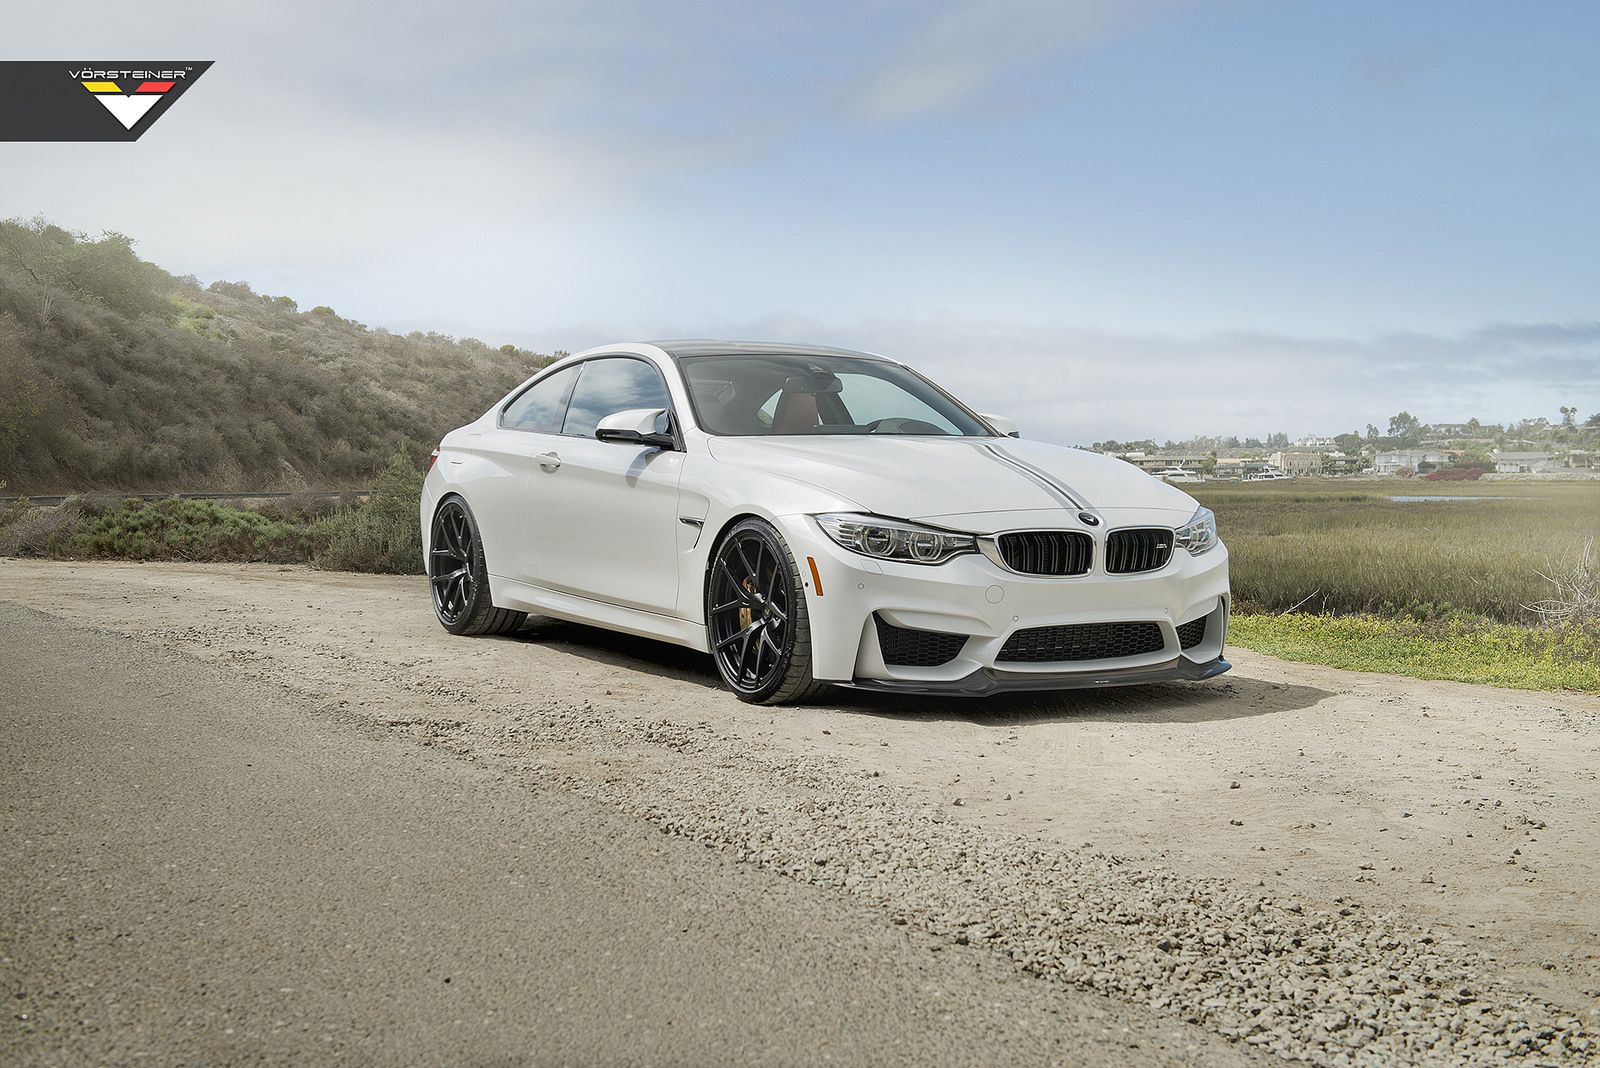 Vorsteiner Presented The Gts Package Prepared For The Bmw M3 And